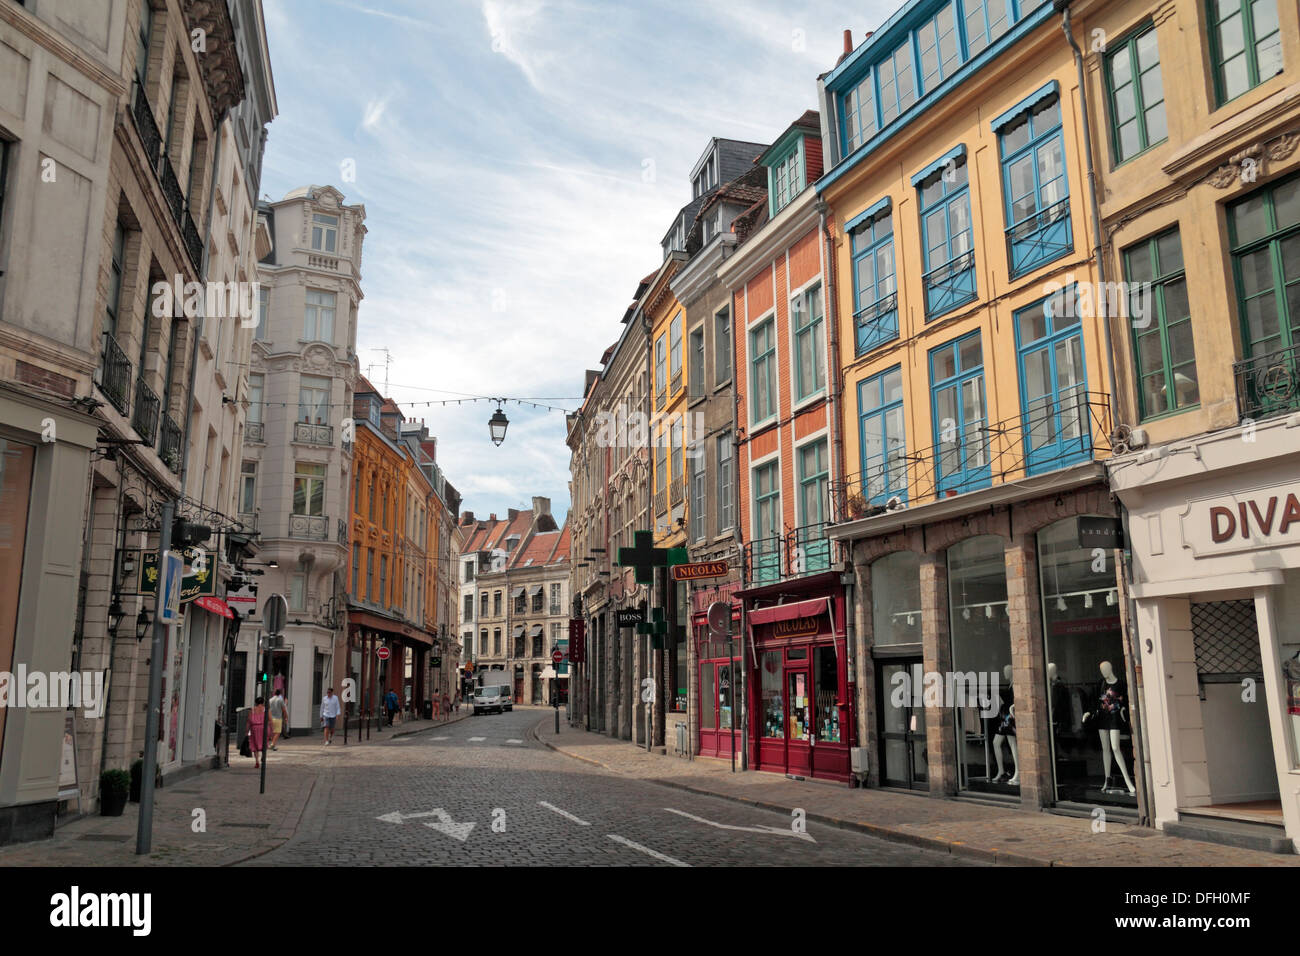 view looking down rue des chats bossus vieux lille little old stock photo 61224703 alamy. Black Bedroom Furniture Sets. Home Design Ideas